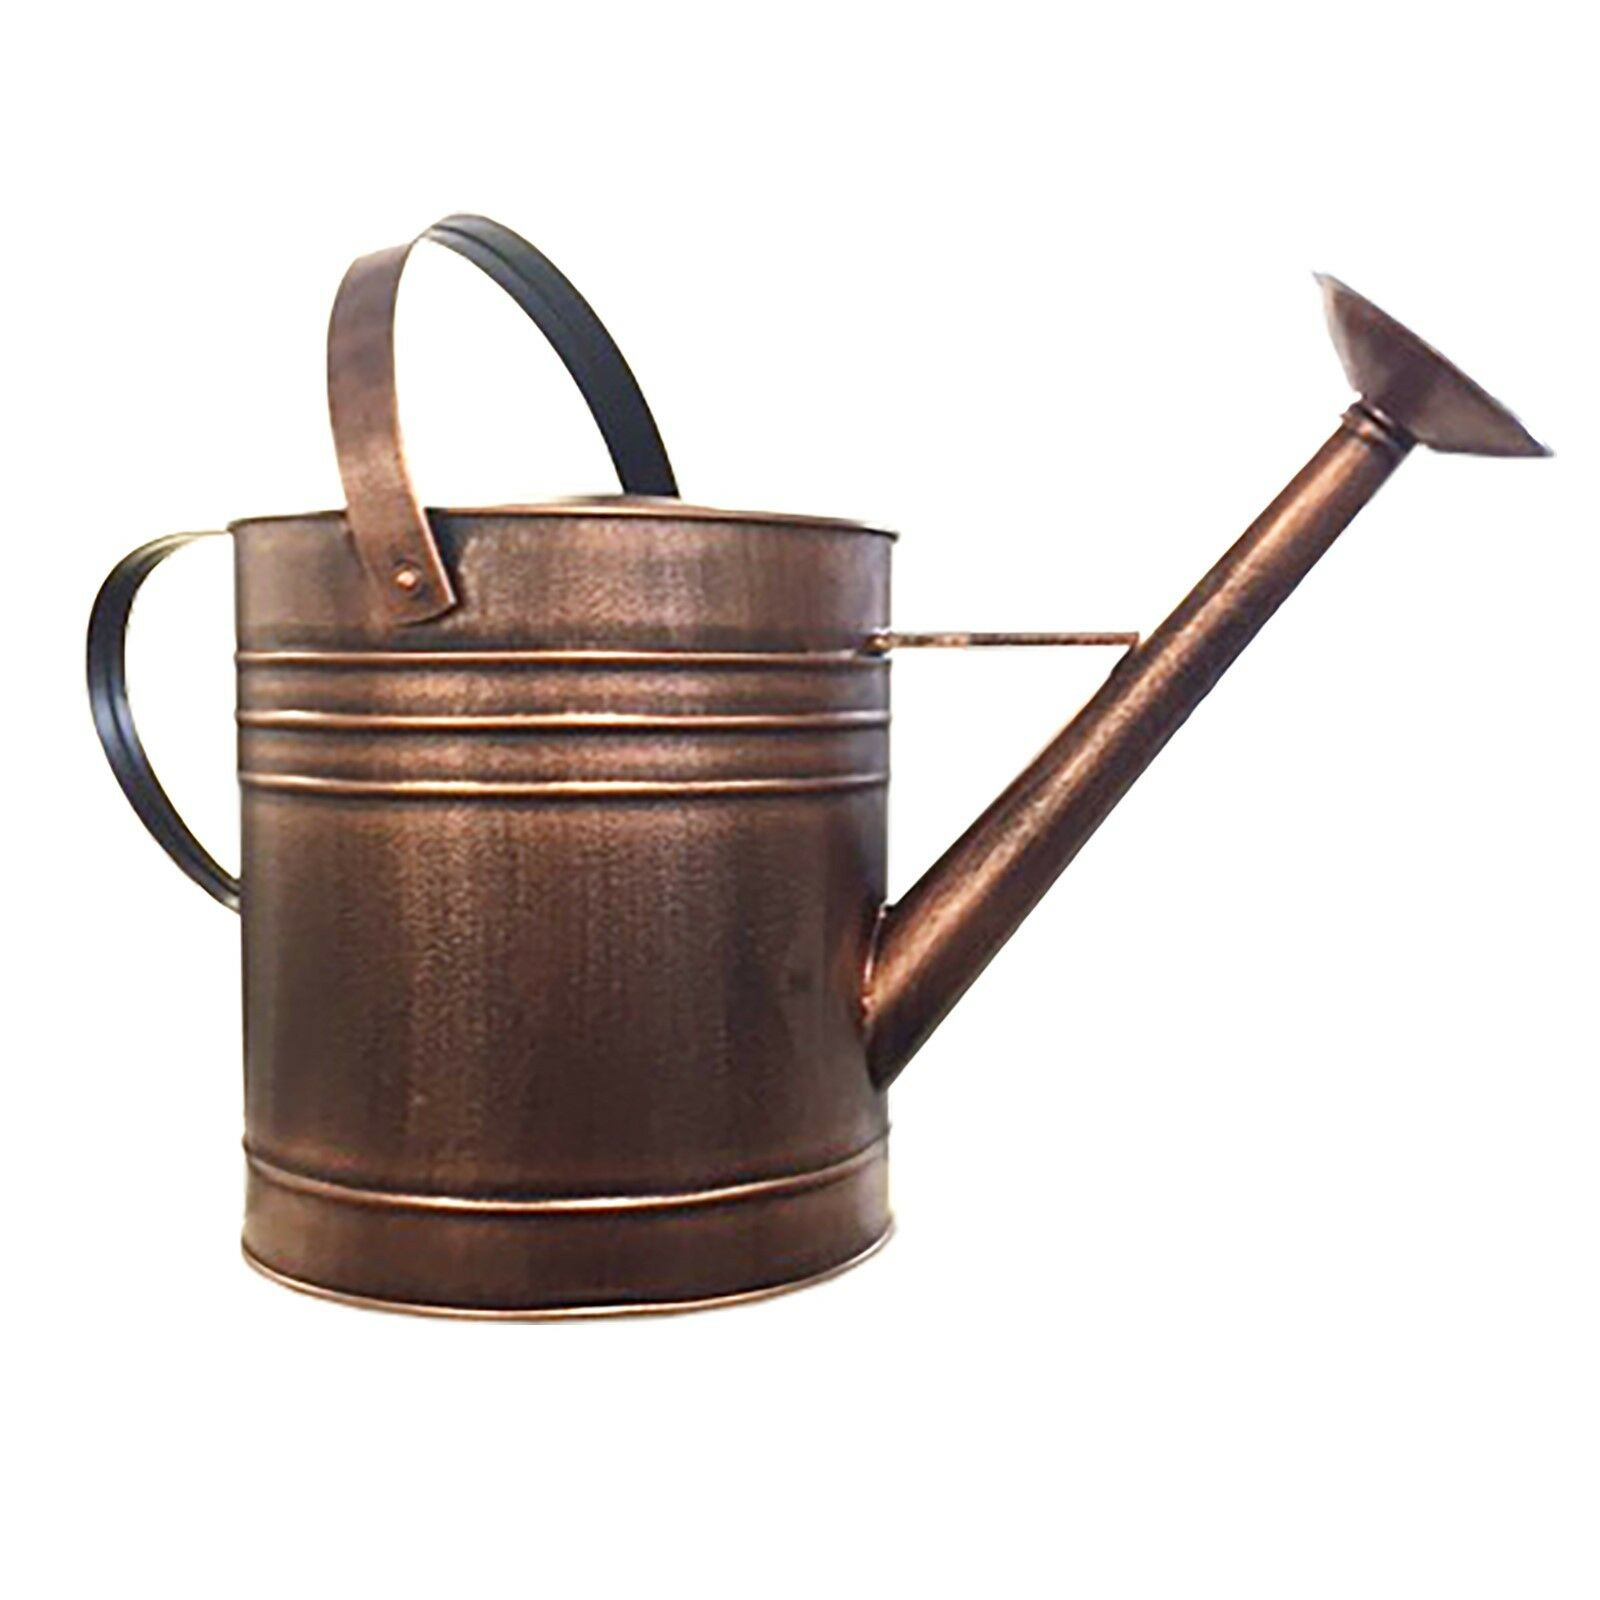 Holman WATERING CAN 9L Easy Balance & Pouring COPPER FINISHED Australian Brand